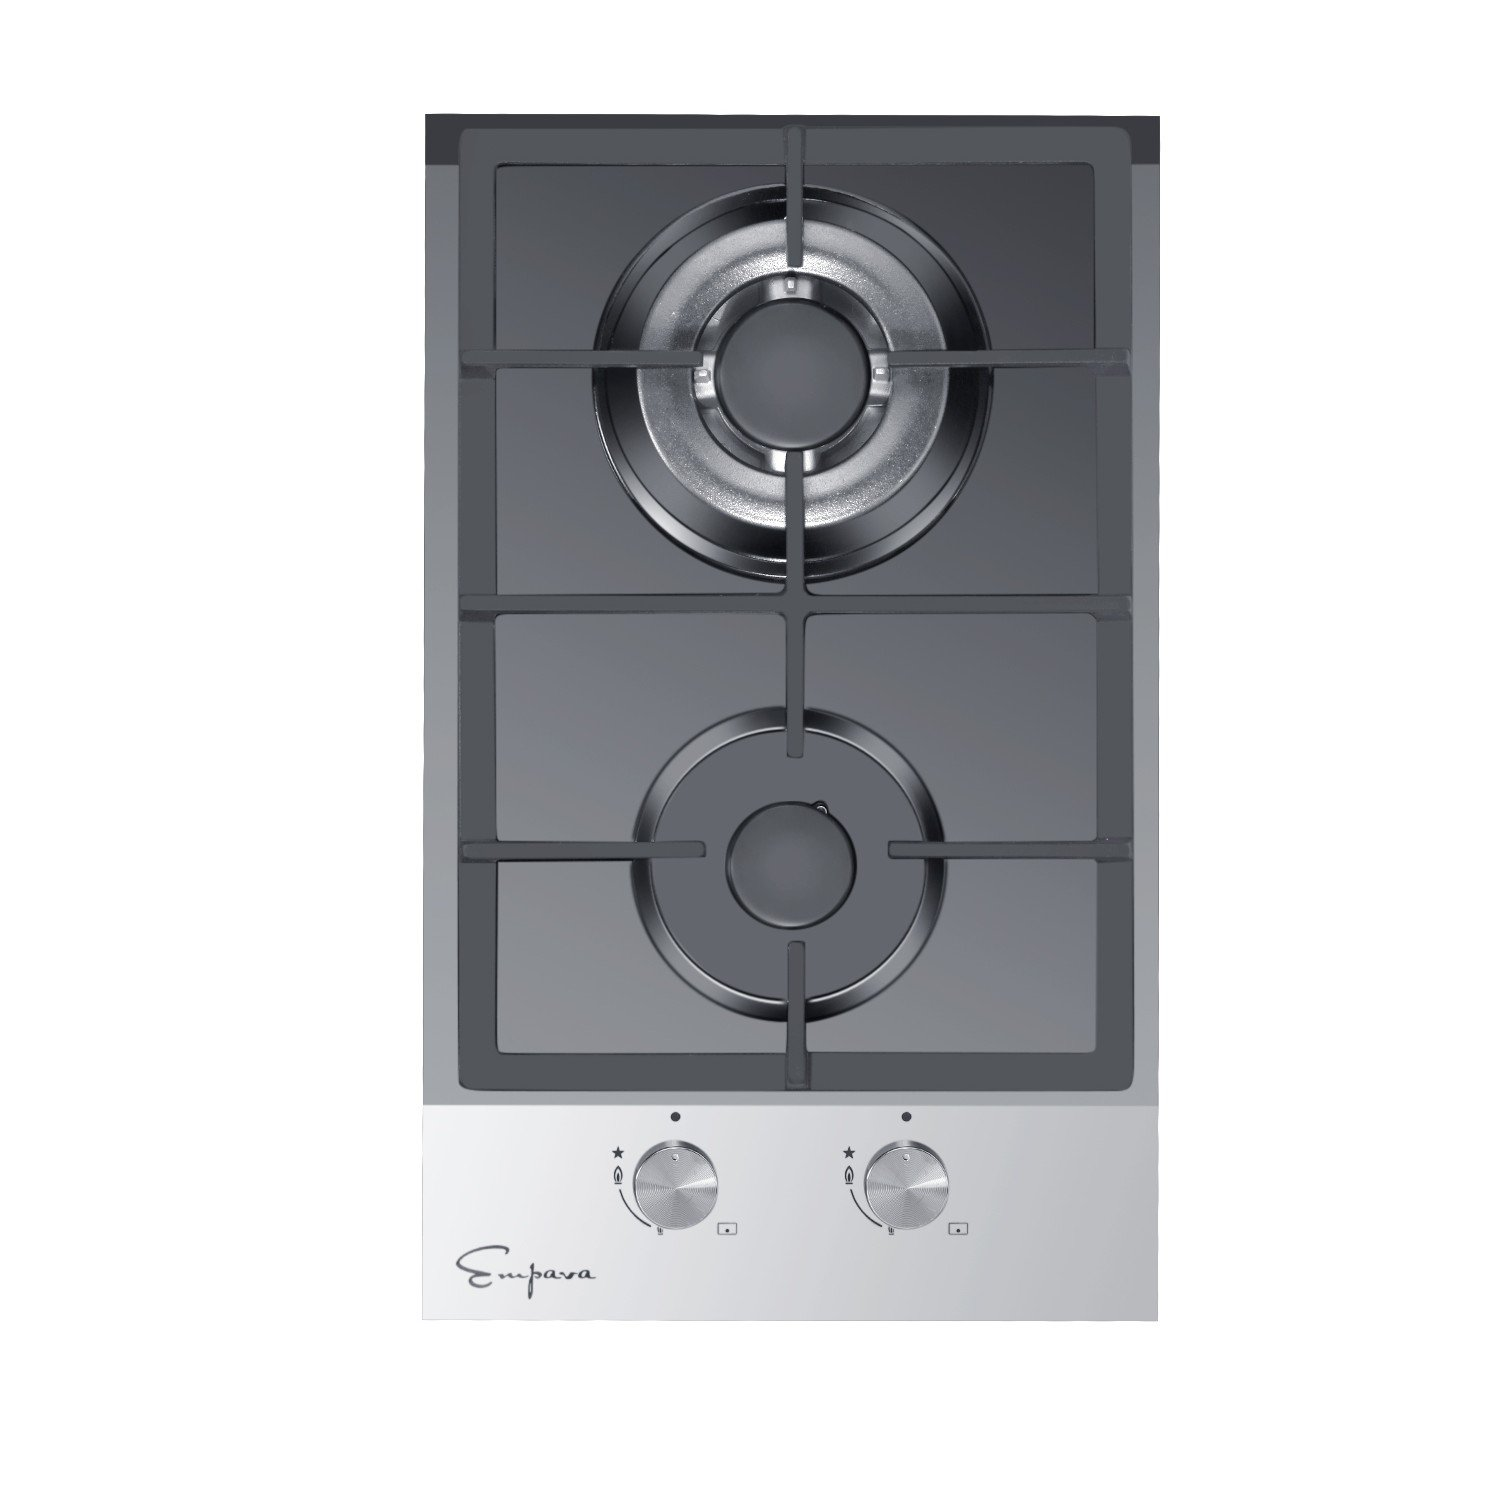 Empava 12 Tempered Glass 2 Italy Sabaf Burners Stove Top Gas Cooktop EMPV-12GC027